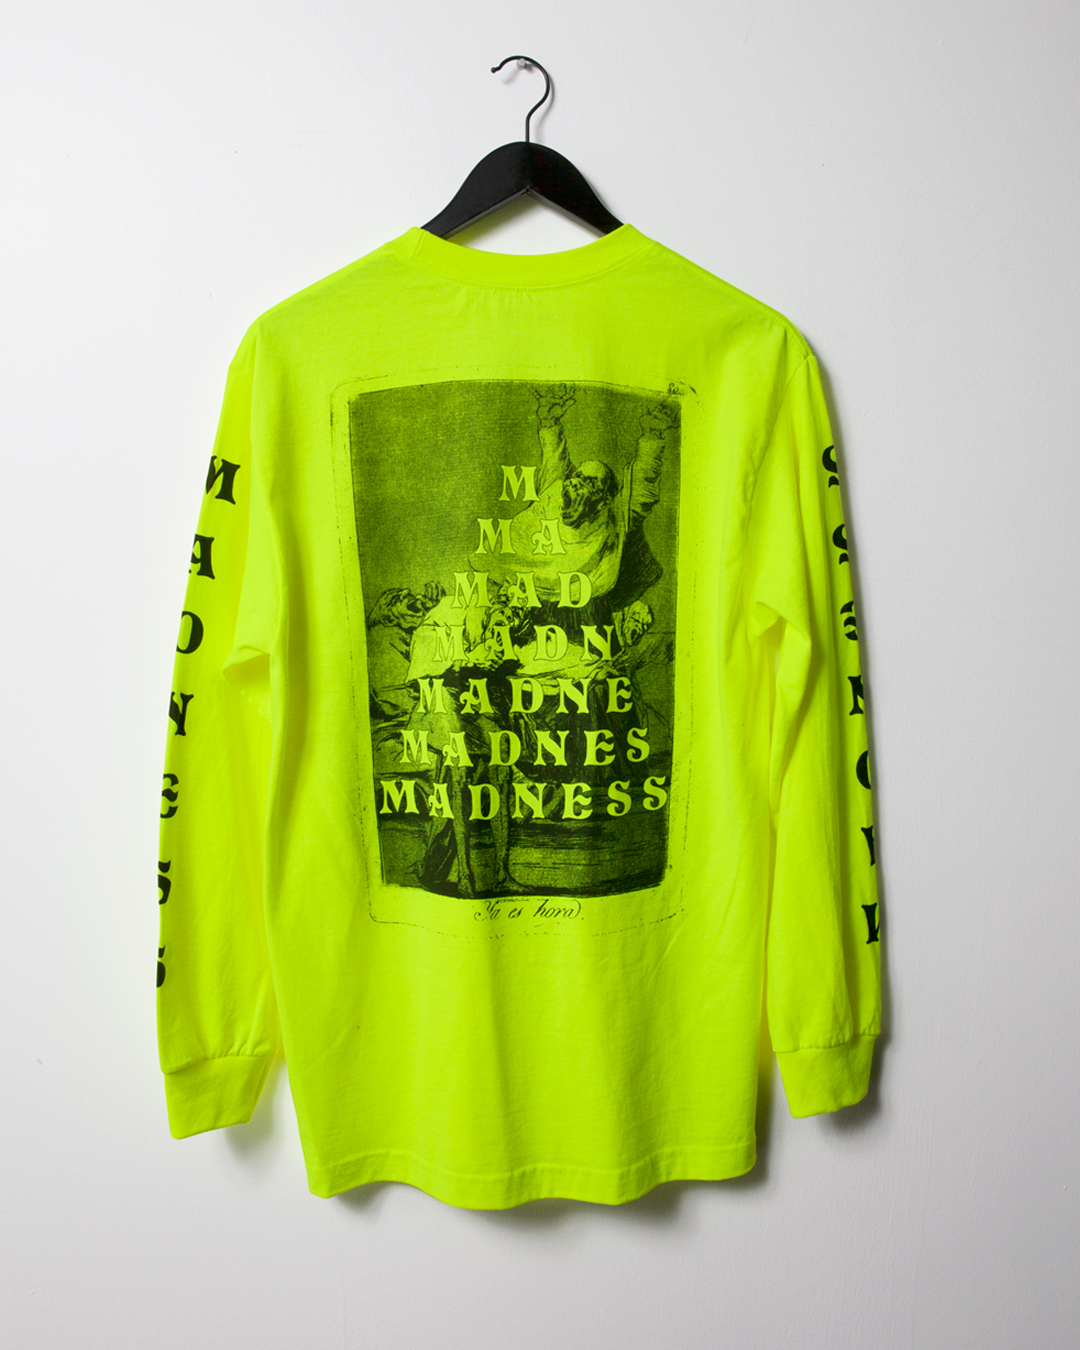 madness-skateboards-TRICKLEDOWN-NEON-LS-BACK-1350.jpg